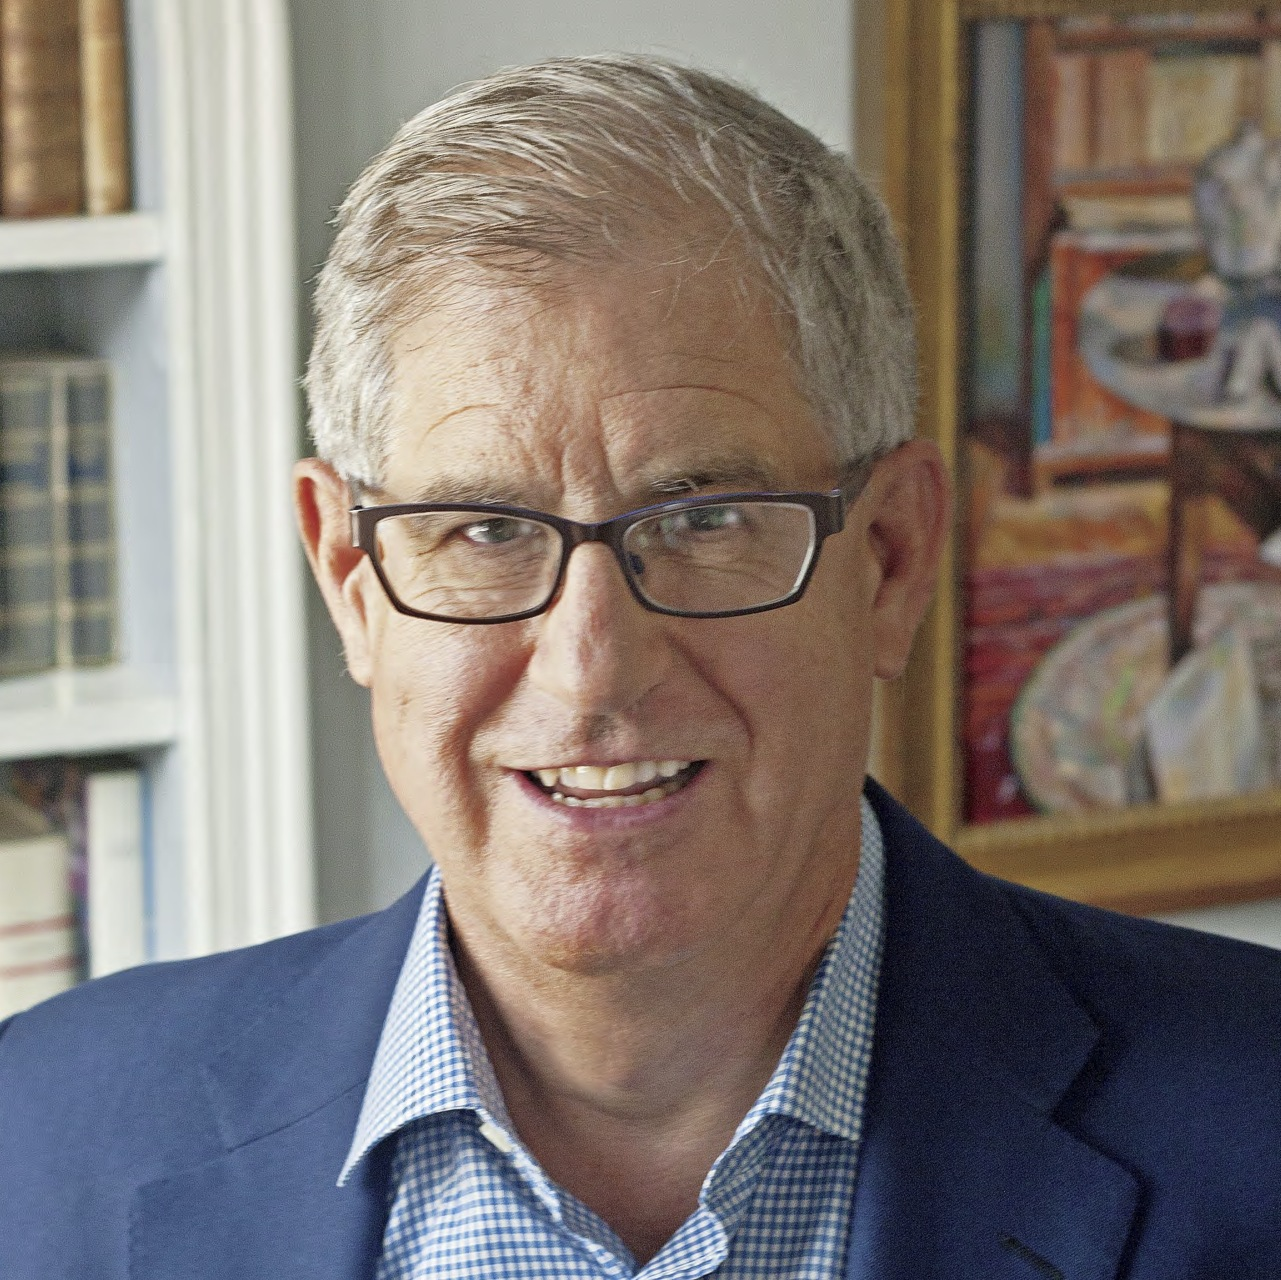 Photo of Jonathan Galassi by Elena Seibert